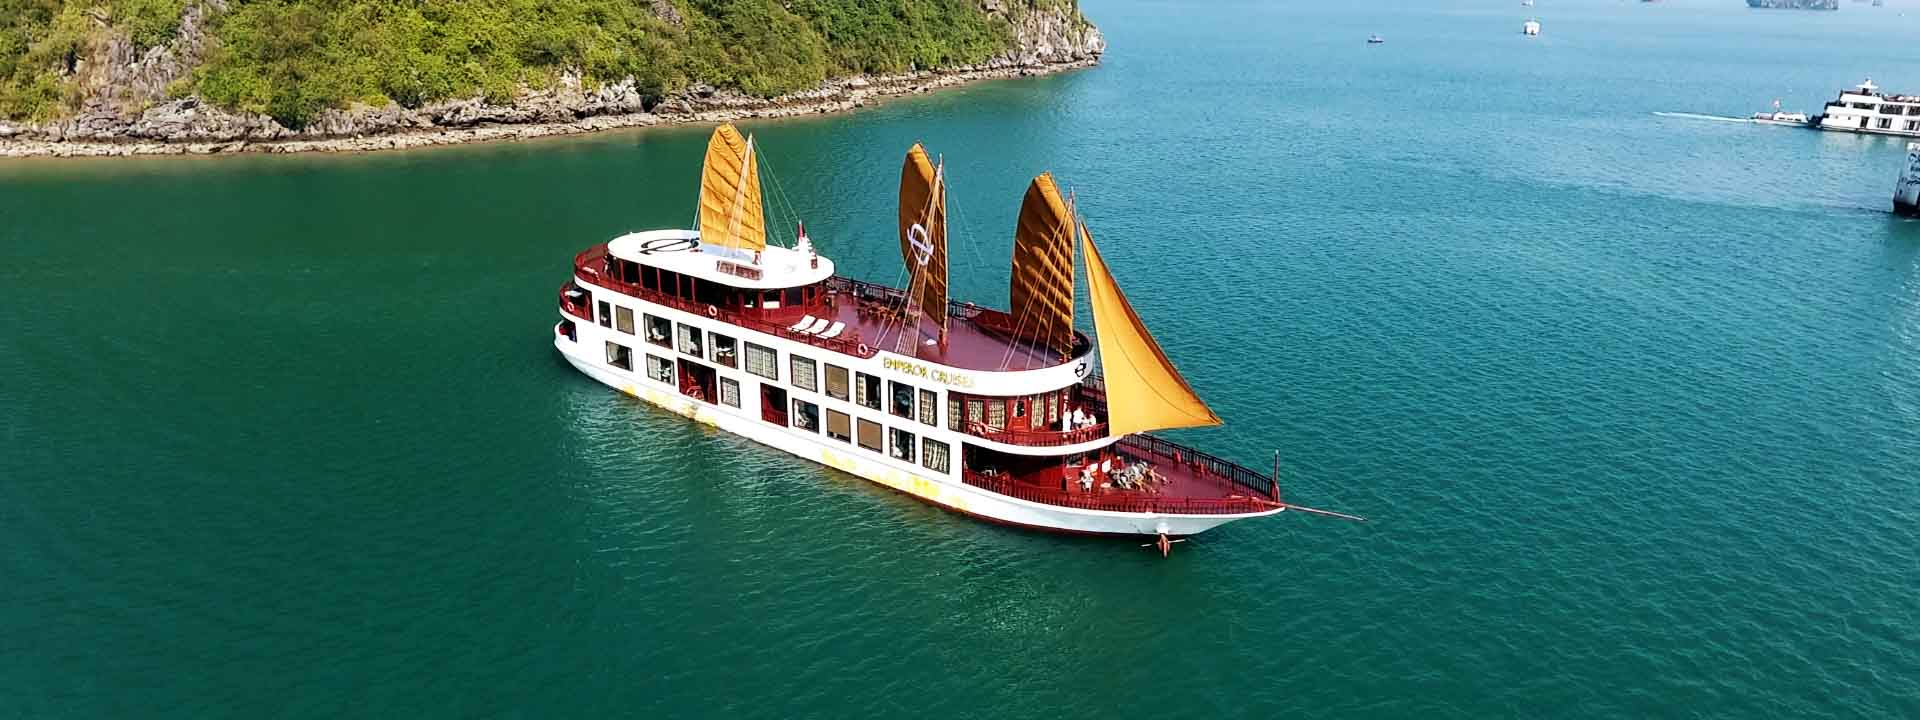 Fullday Cruise with fishing, snorkeling and more on Emperor Cruises